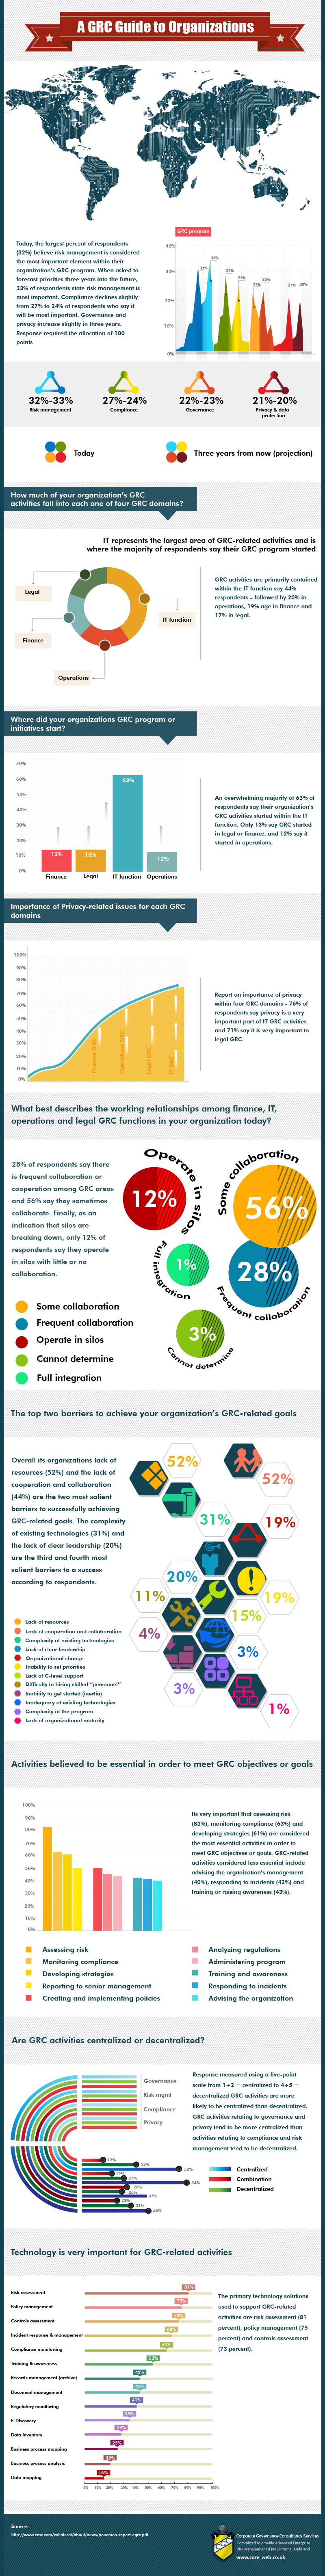 Infographics – A GRC Guide (Governance, Risk and Compliance) to Organizations